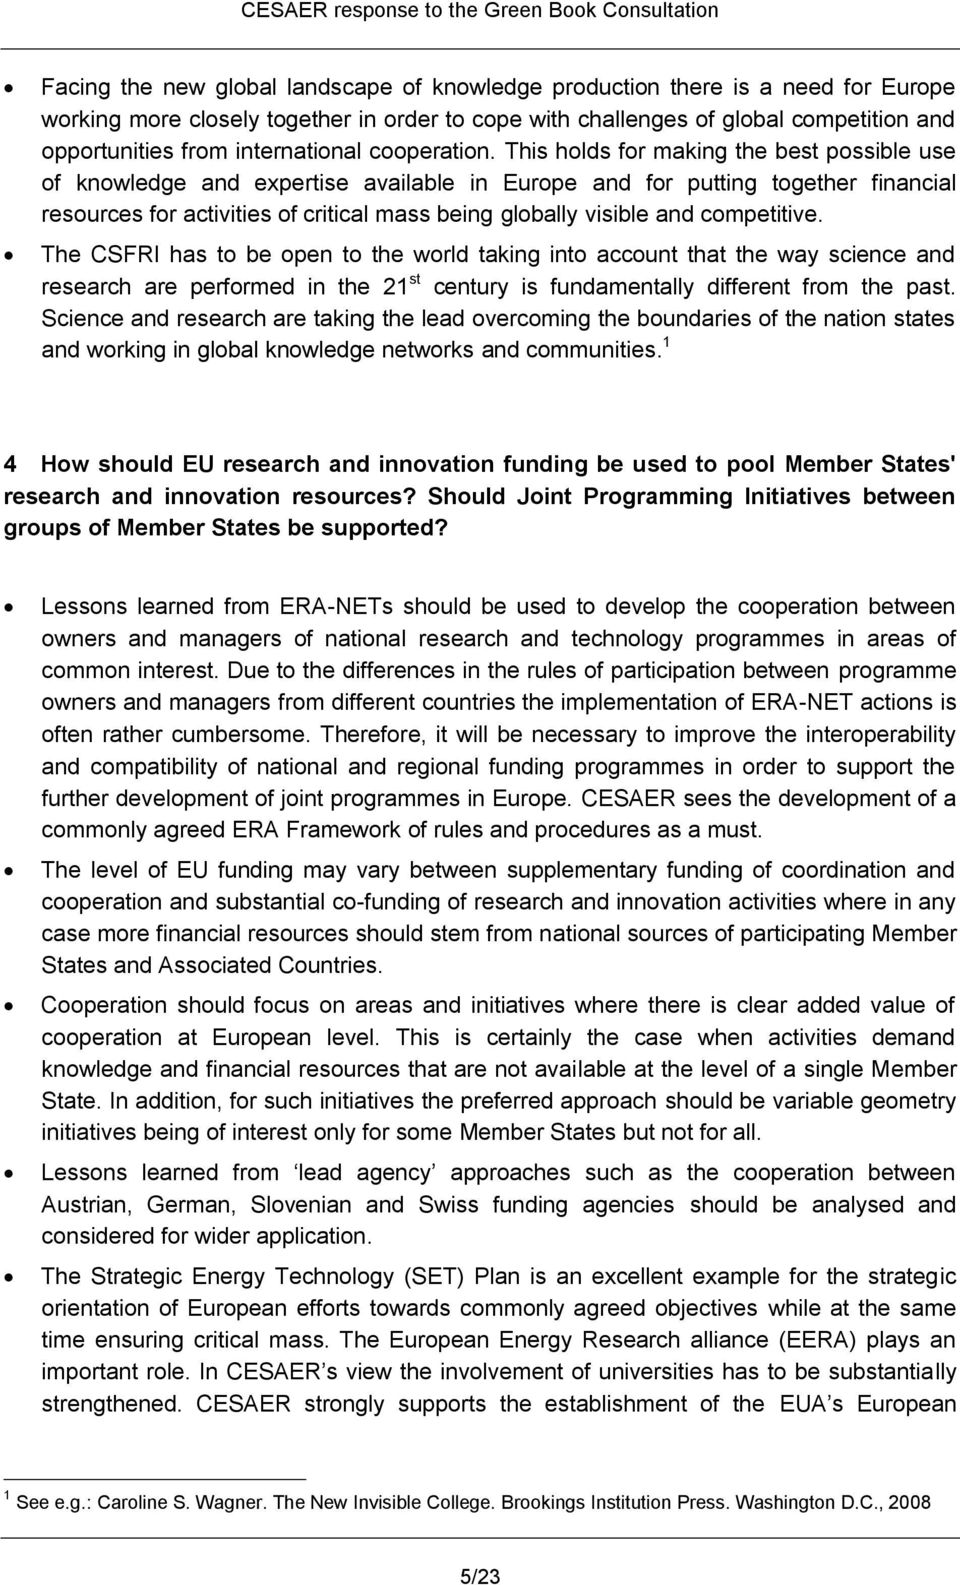 This holds for making the best possible use of knowledge and expertise available in Europe and for putting together financial resources for activities of critical mass being globally visible and